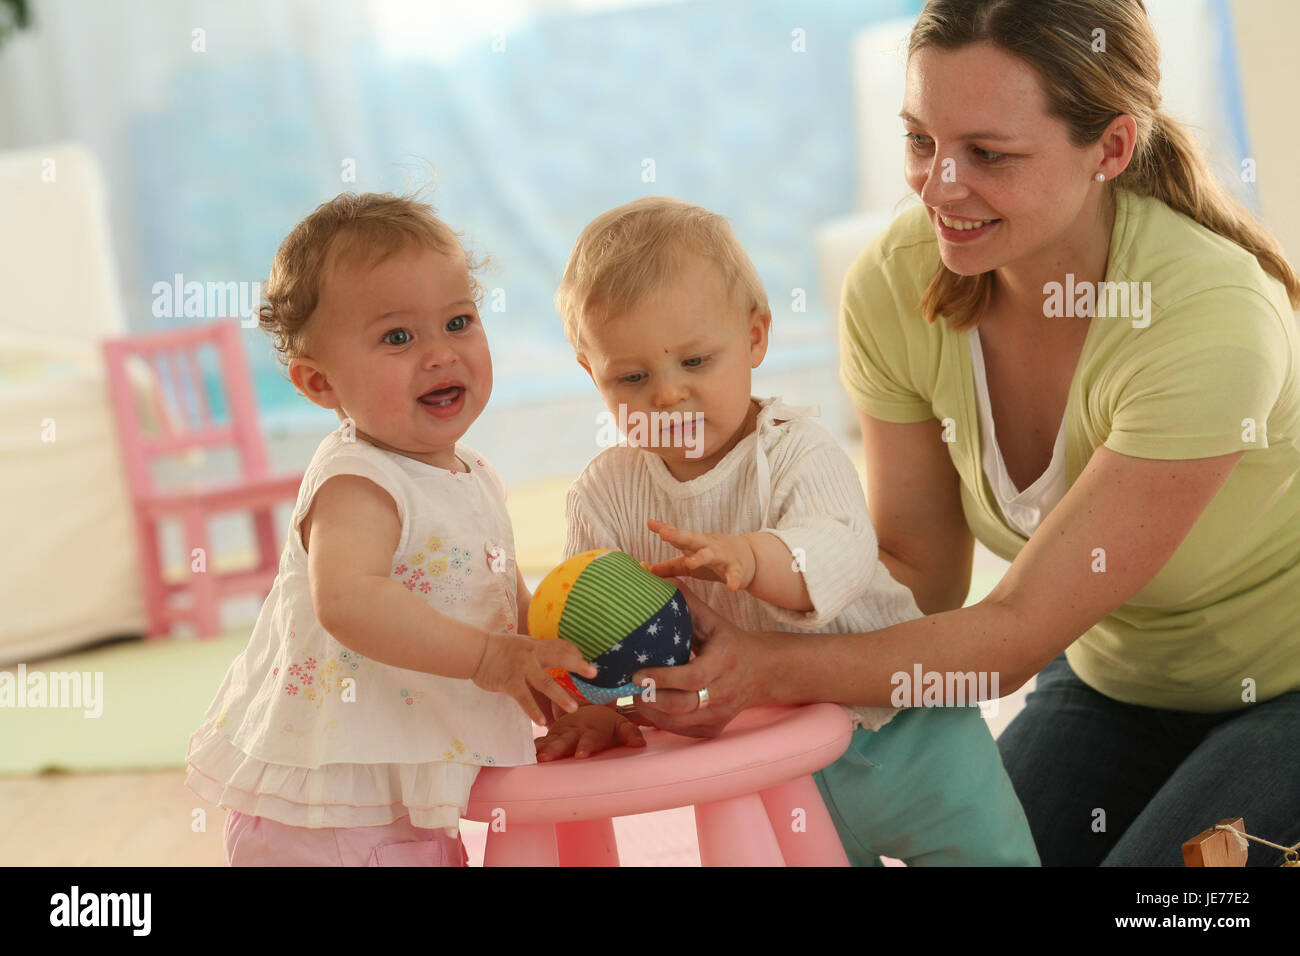 Babies, 9 months, mother, ball, play, toys, dress, blond, discoveries, friends, reach, group, Indoor, boy, person, - Stock Image